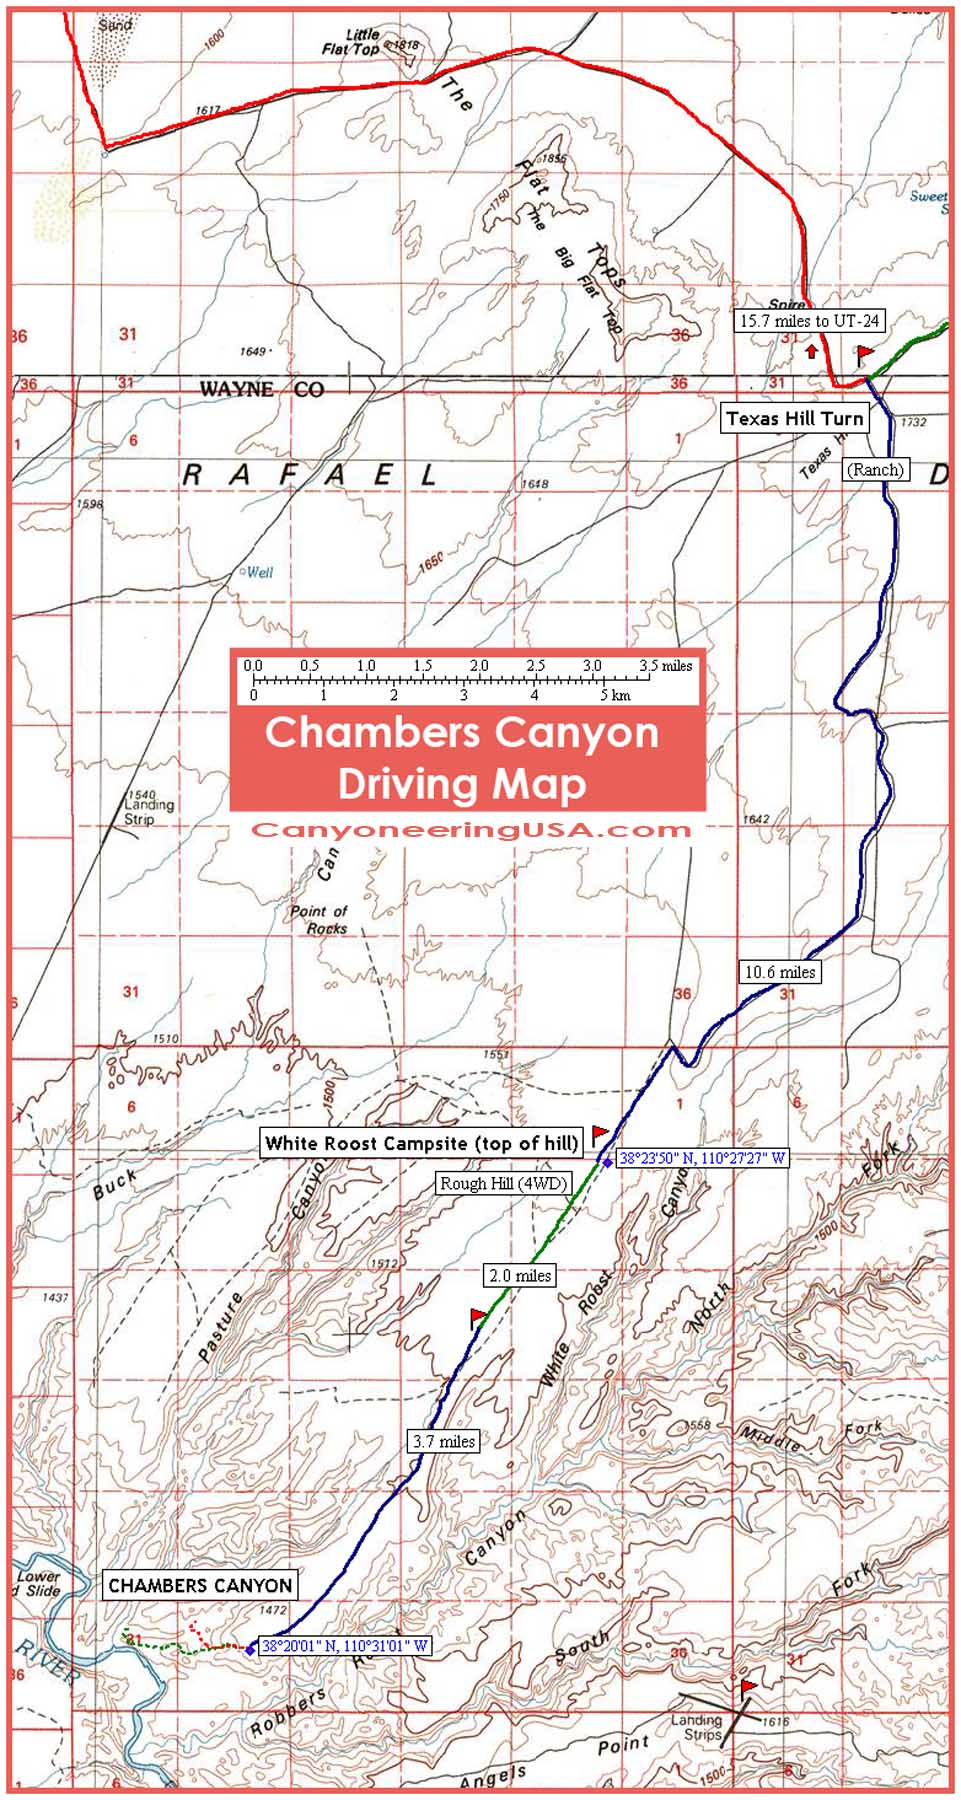 Chambers Canyon Driving Map.jpg